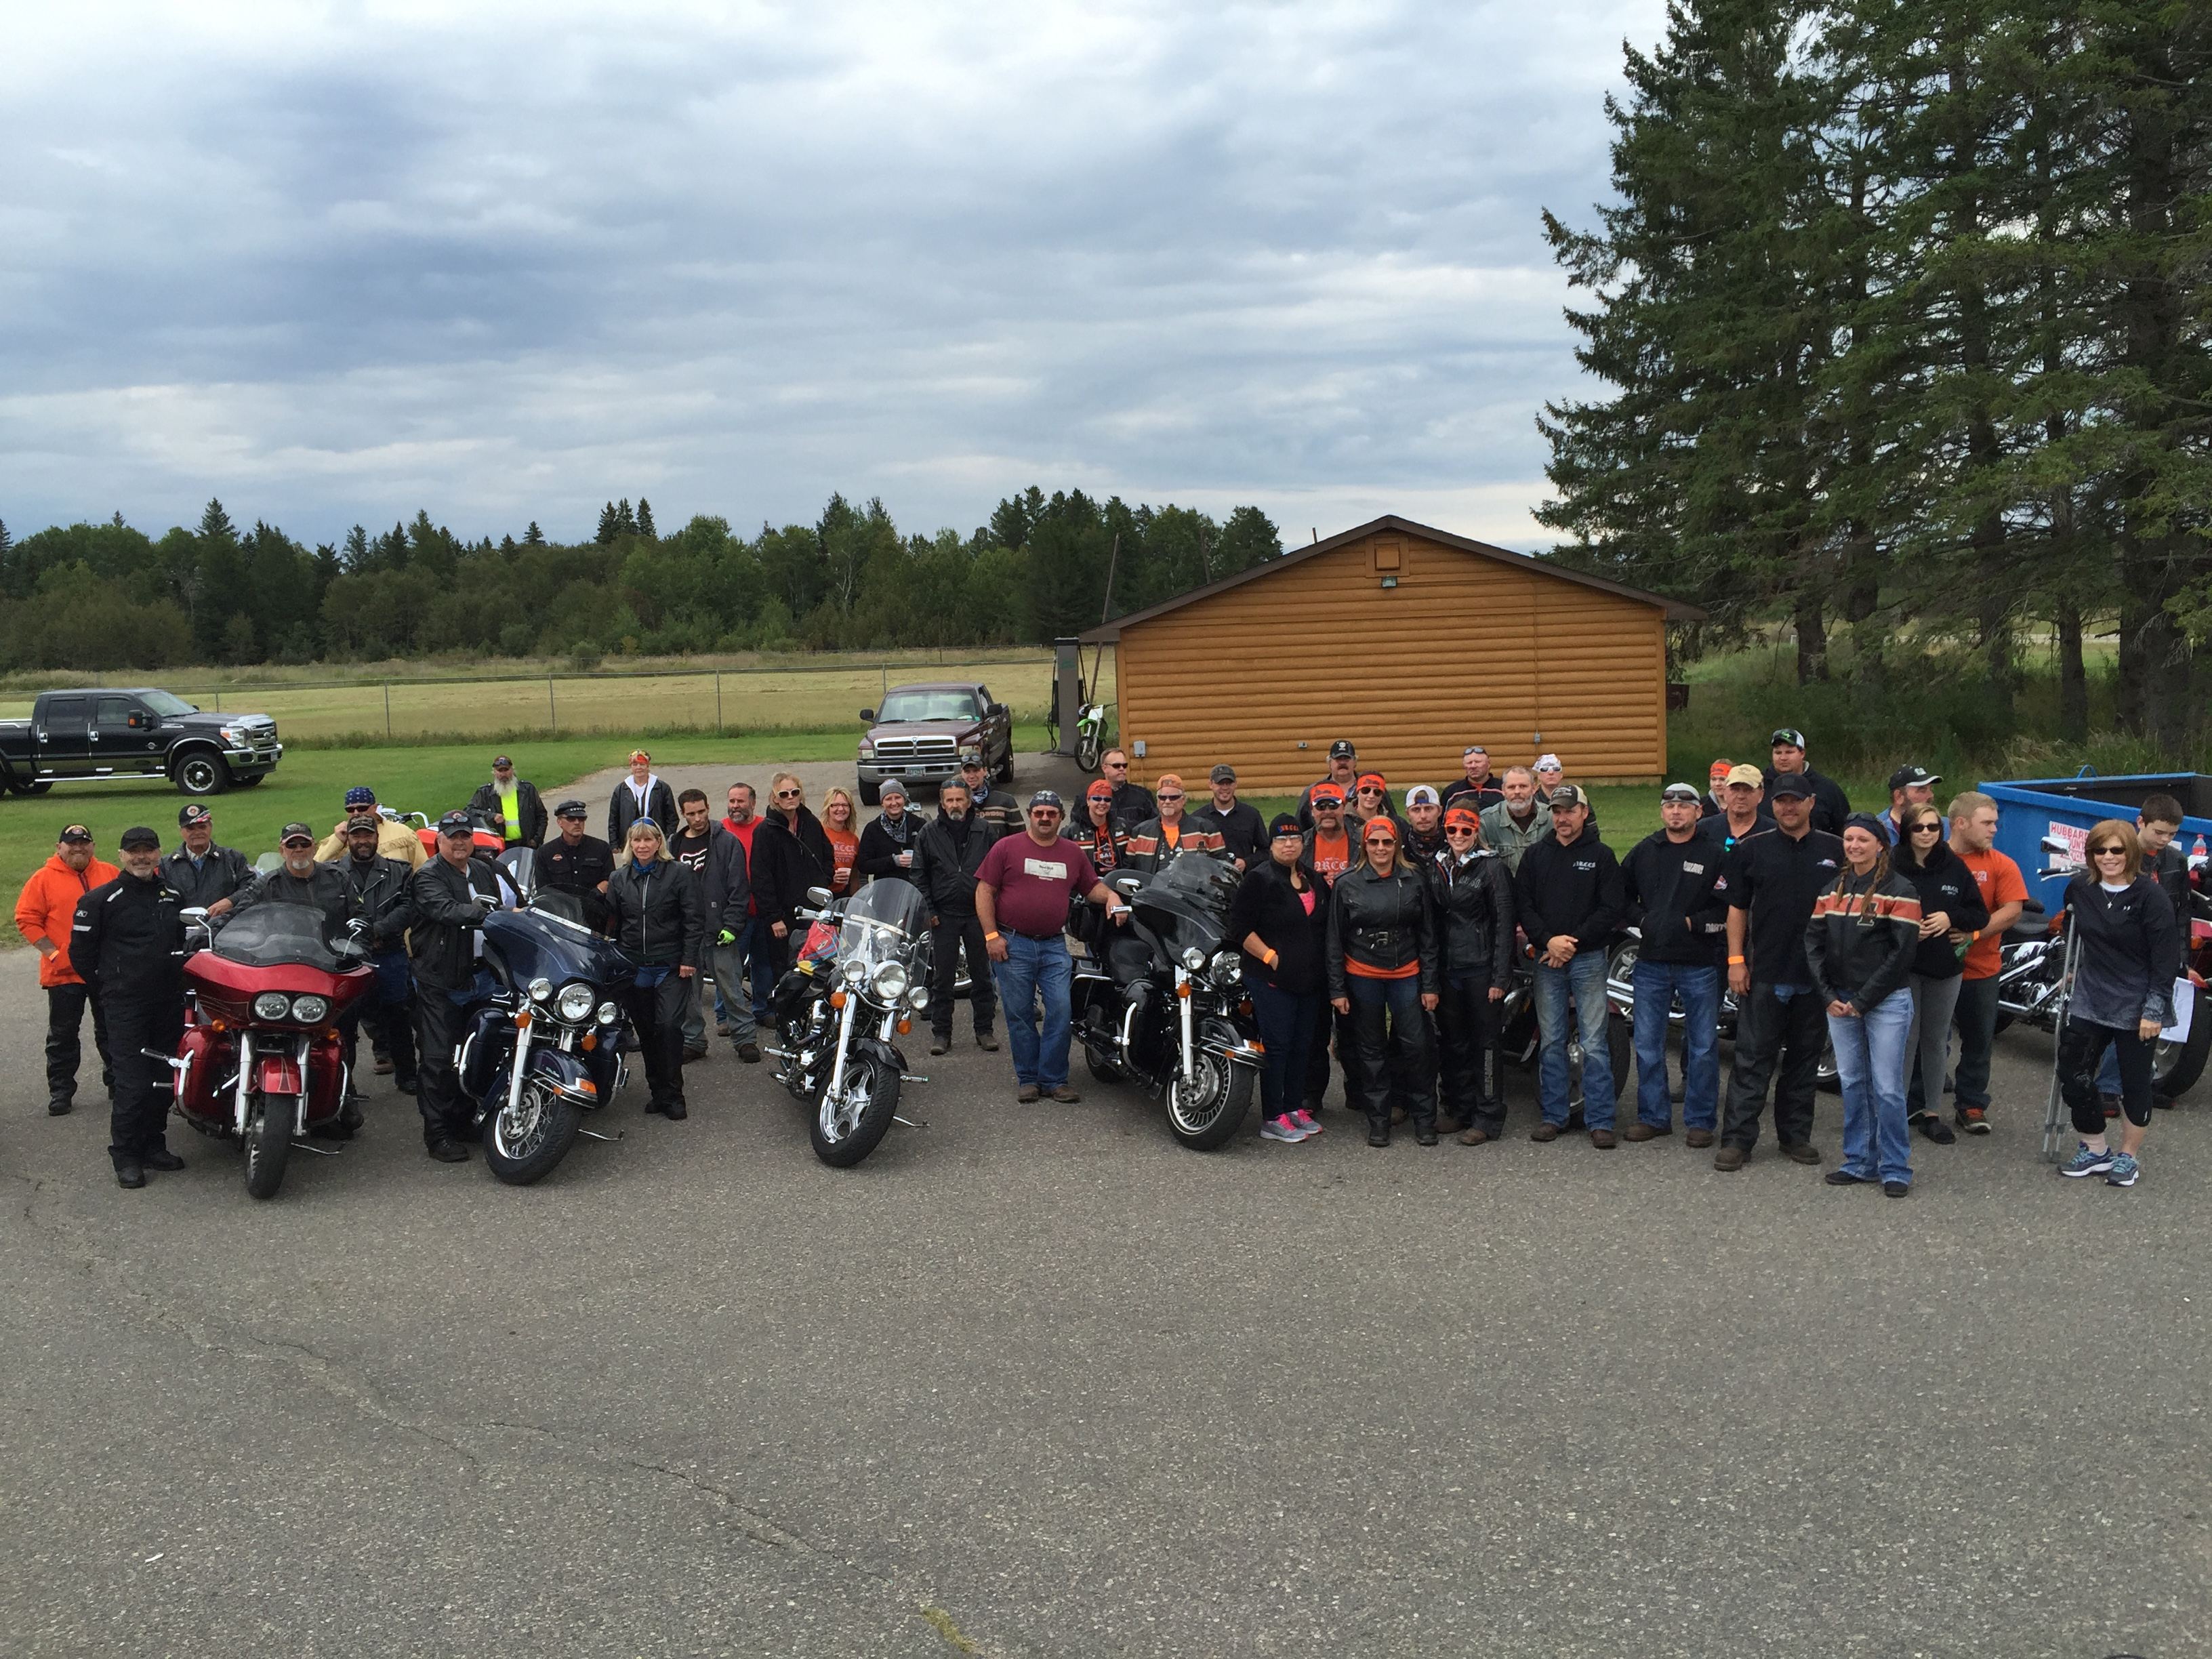 NRCCA group of motorcycles and riders standing in parking lot